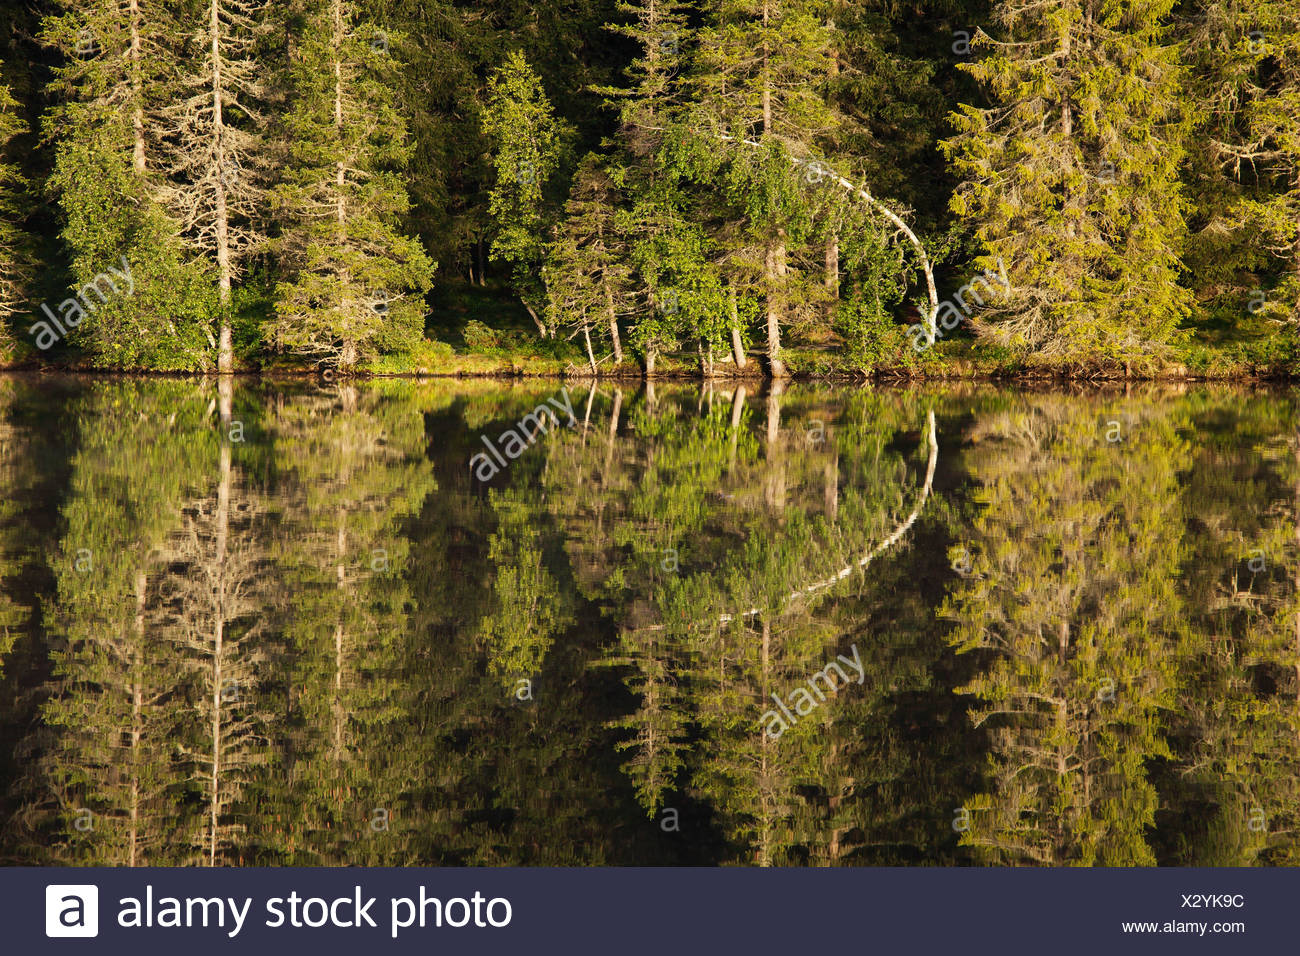 Prebersee Lake, coniferous forest on the lakefront, Lungau, Salzburg state, Austria, Europe - Stock Image